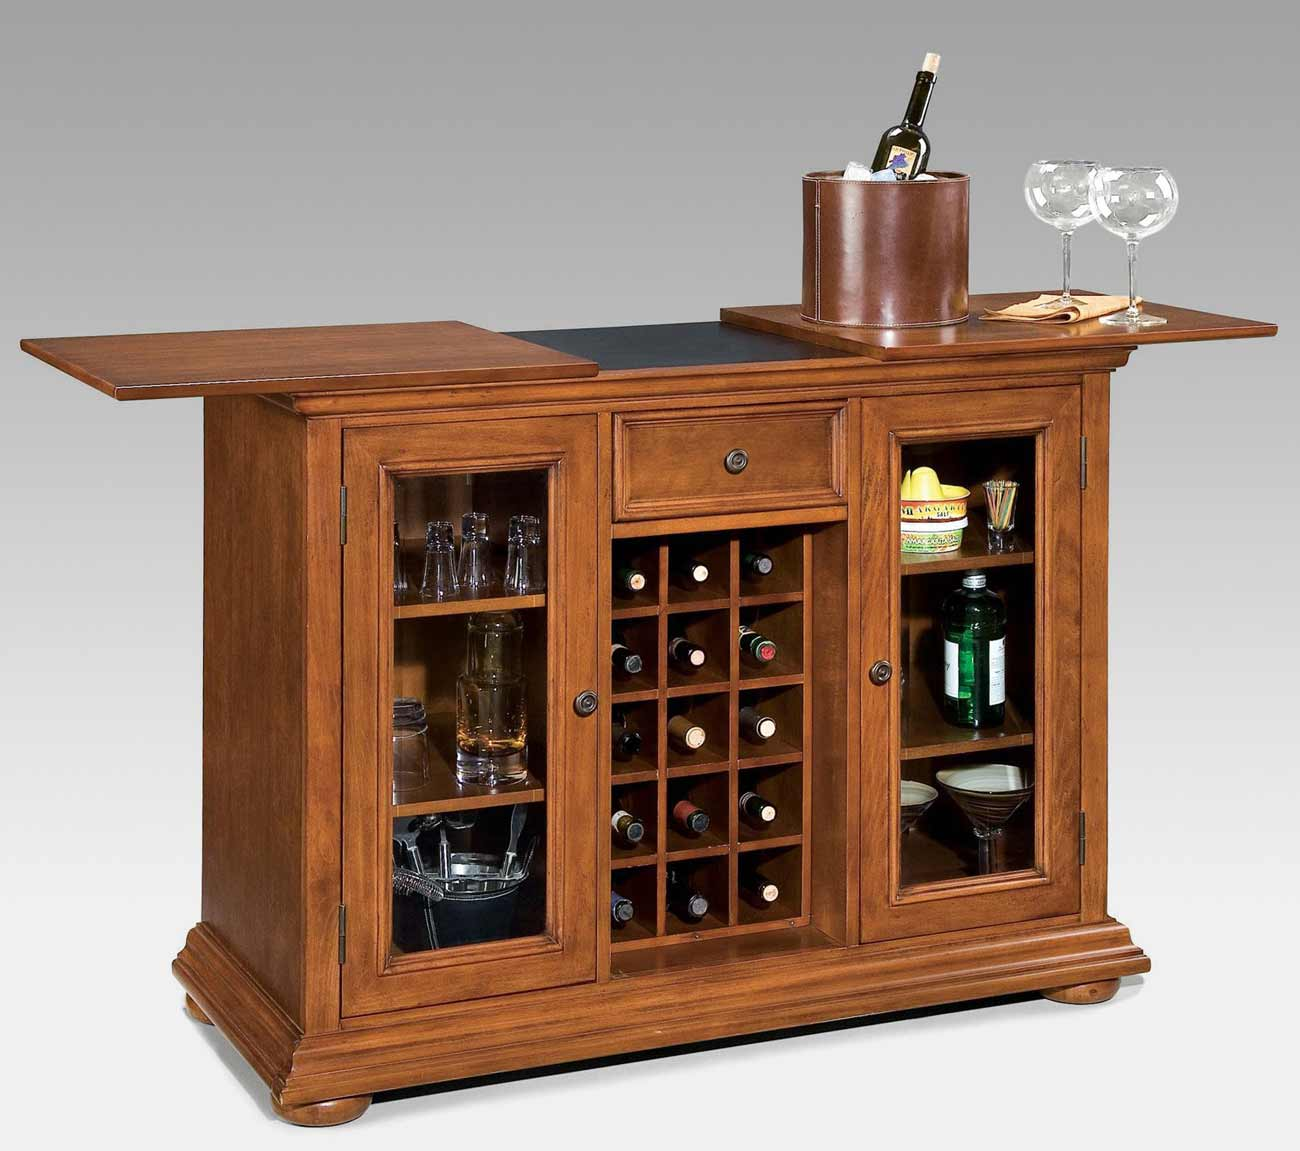 Bar Furniture Home: Feel The Home